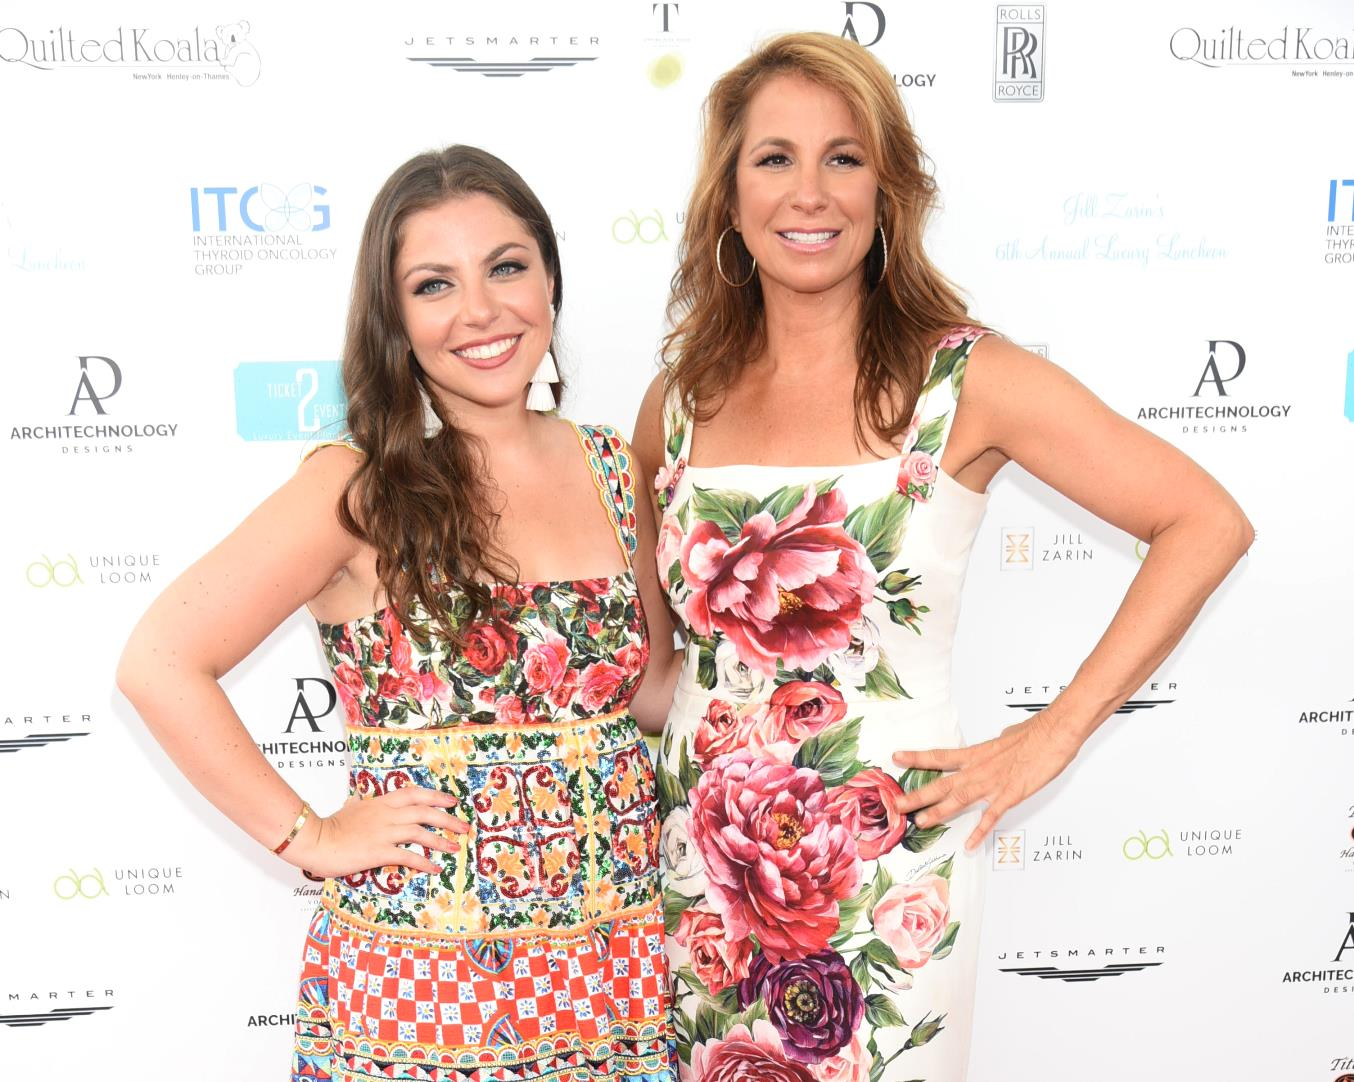 RHONY Alum Jill Zarin Reveals She Used a Sperm Donor to Conceive Daughter Ally Shapiro, Plus Ally Shares the 'Shocking' Way She Discovered the Truth